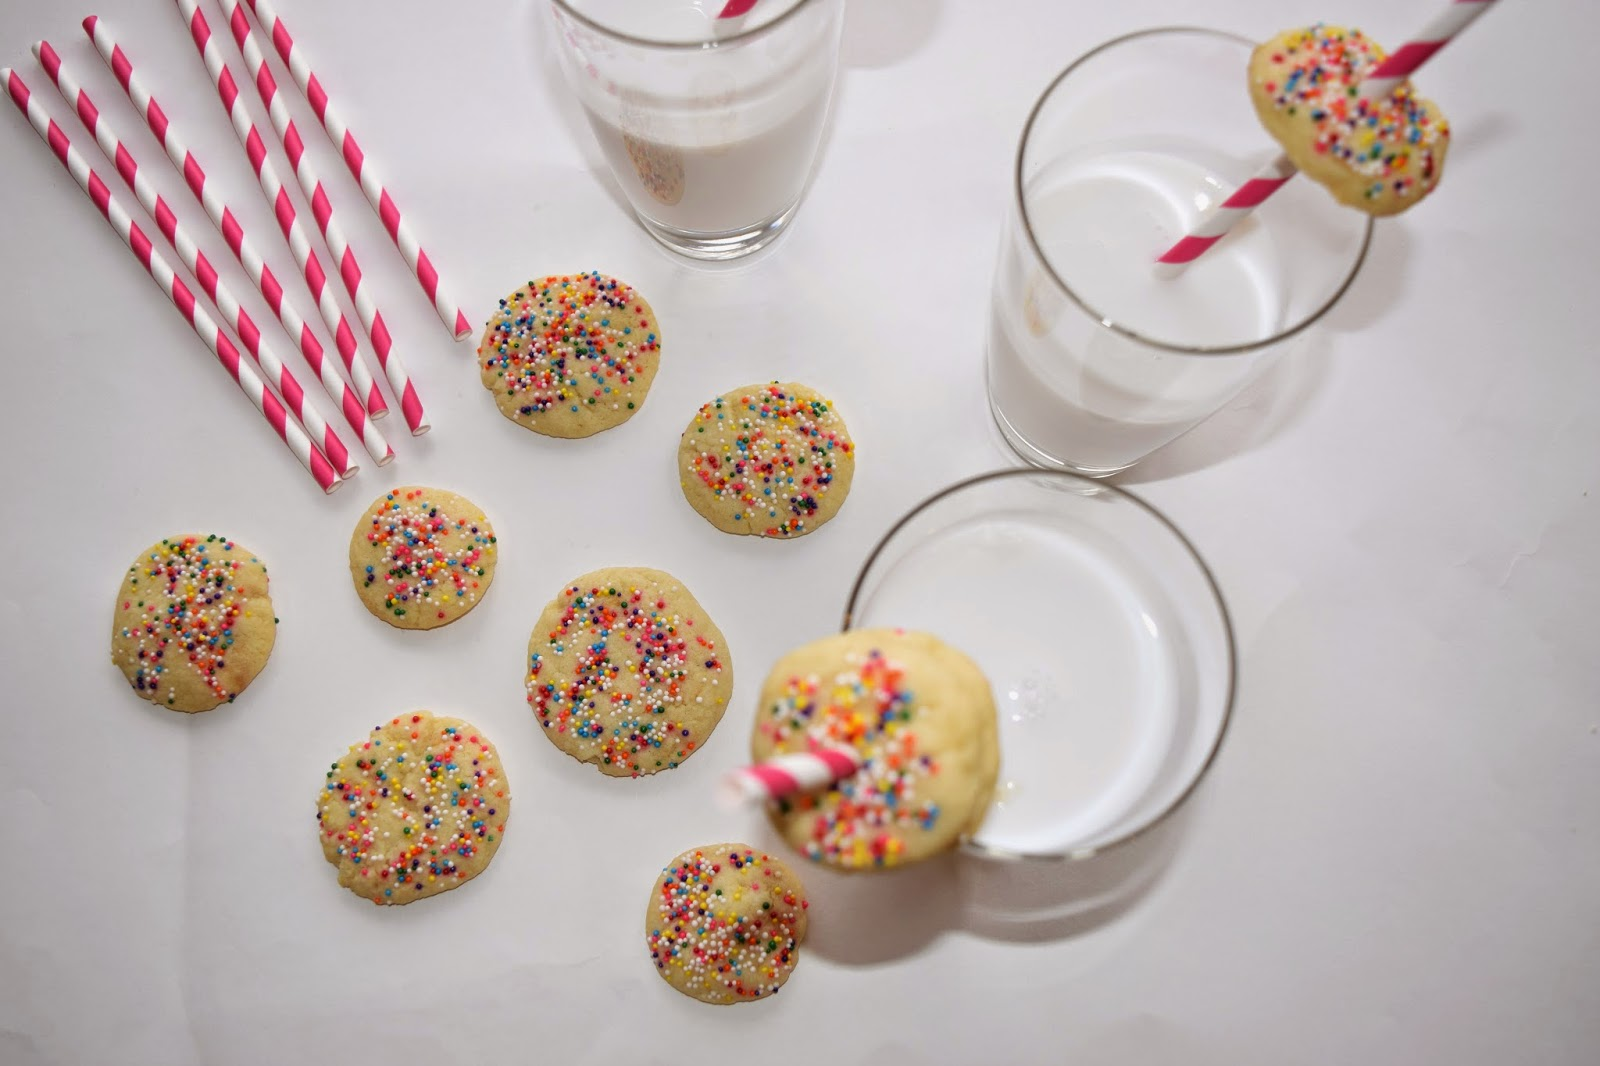 homemade milk & cookies recipe